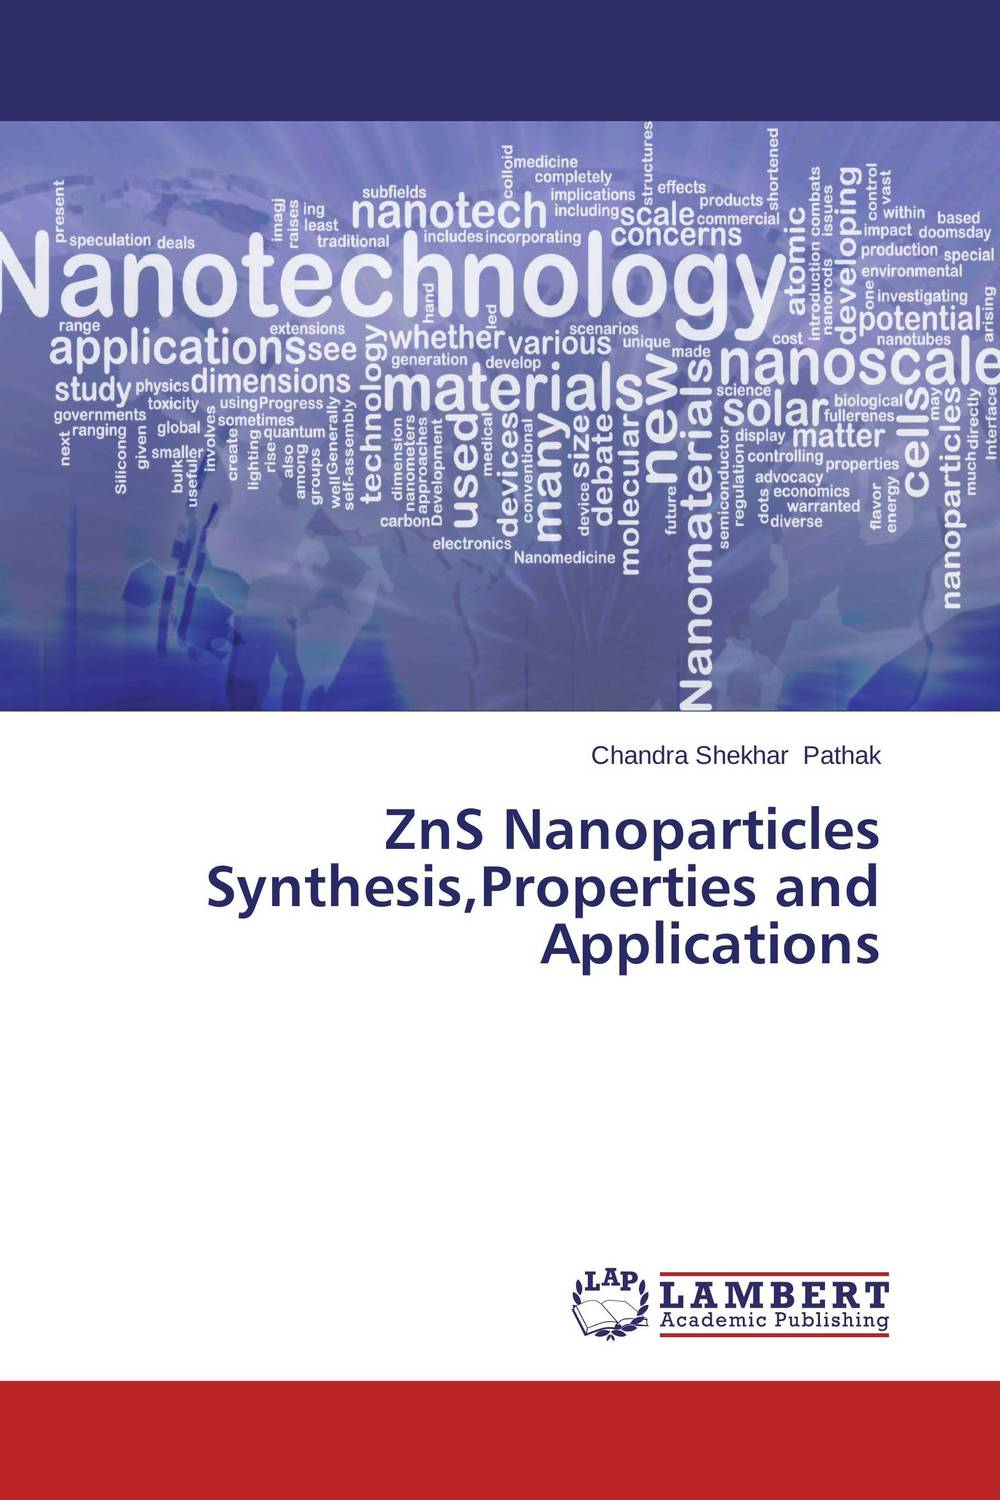 ZnS Nanoparticles Synthesis,Properties and Applications dennis hall g boronic acids preparation and applications in organic synthesis medicine and materials